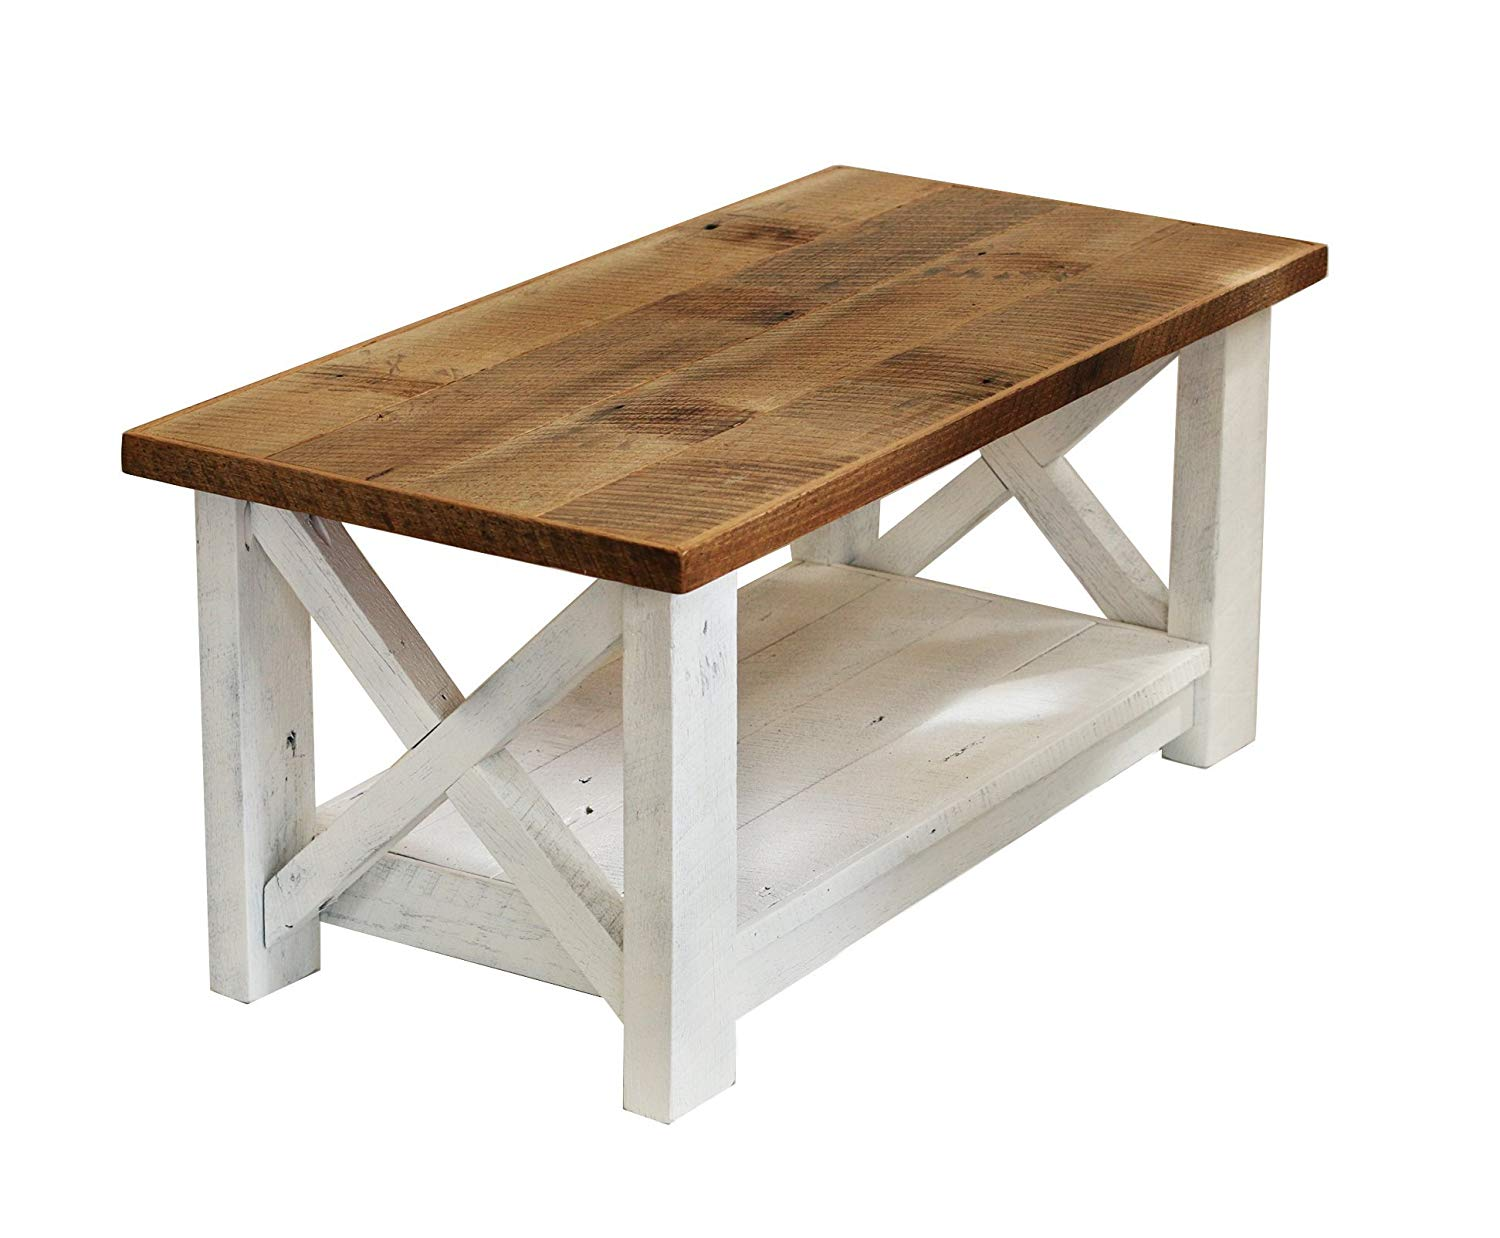 farmhouse coffee table with white base made from end reclaimed wood handmade living rooms mismatched furniture bedside unfinished dark sofa room magnolia dining kmart home